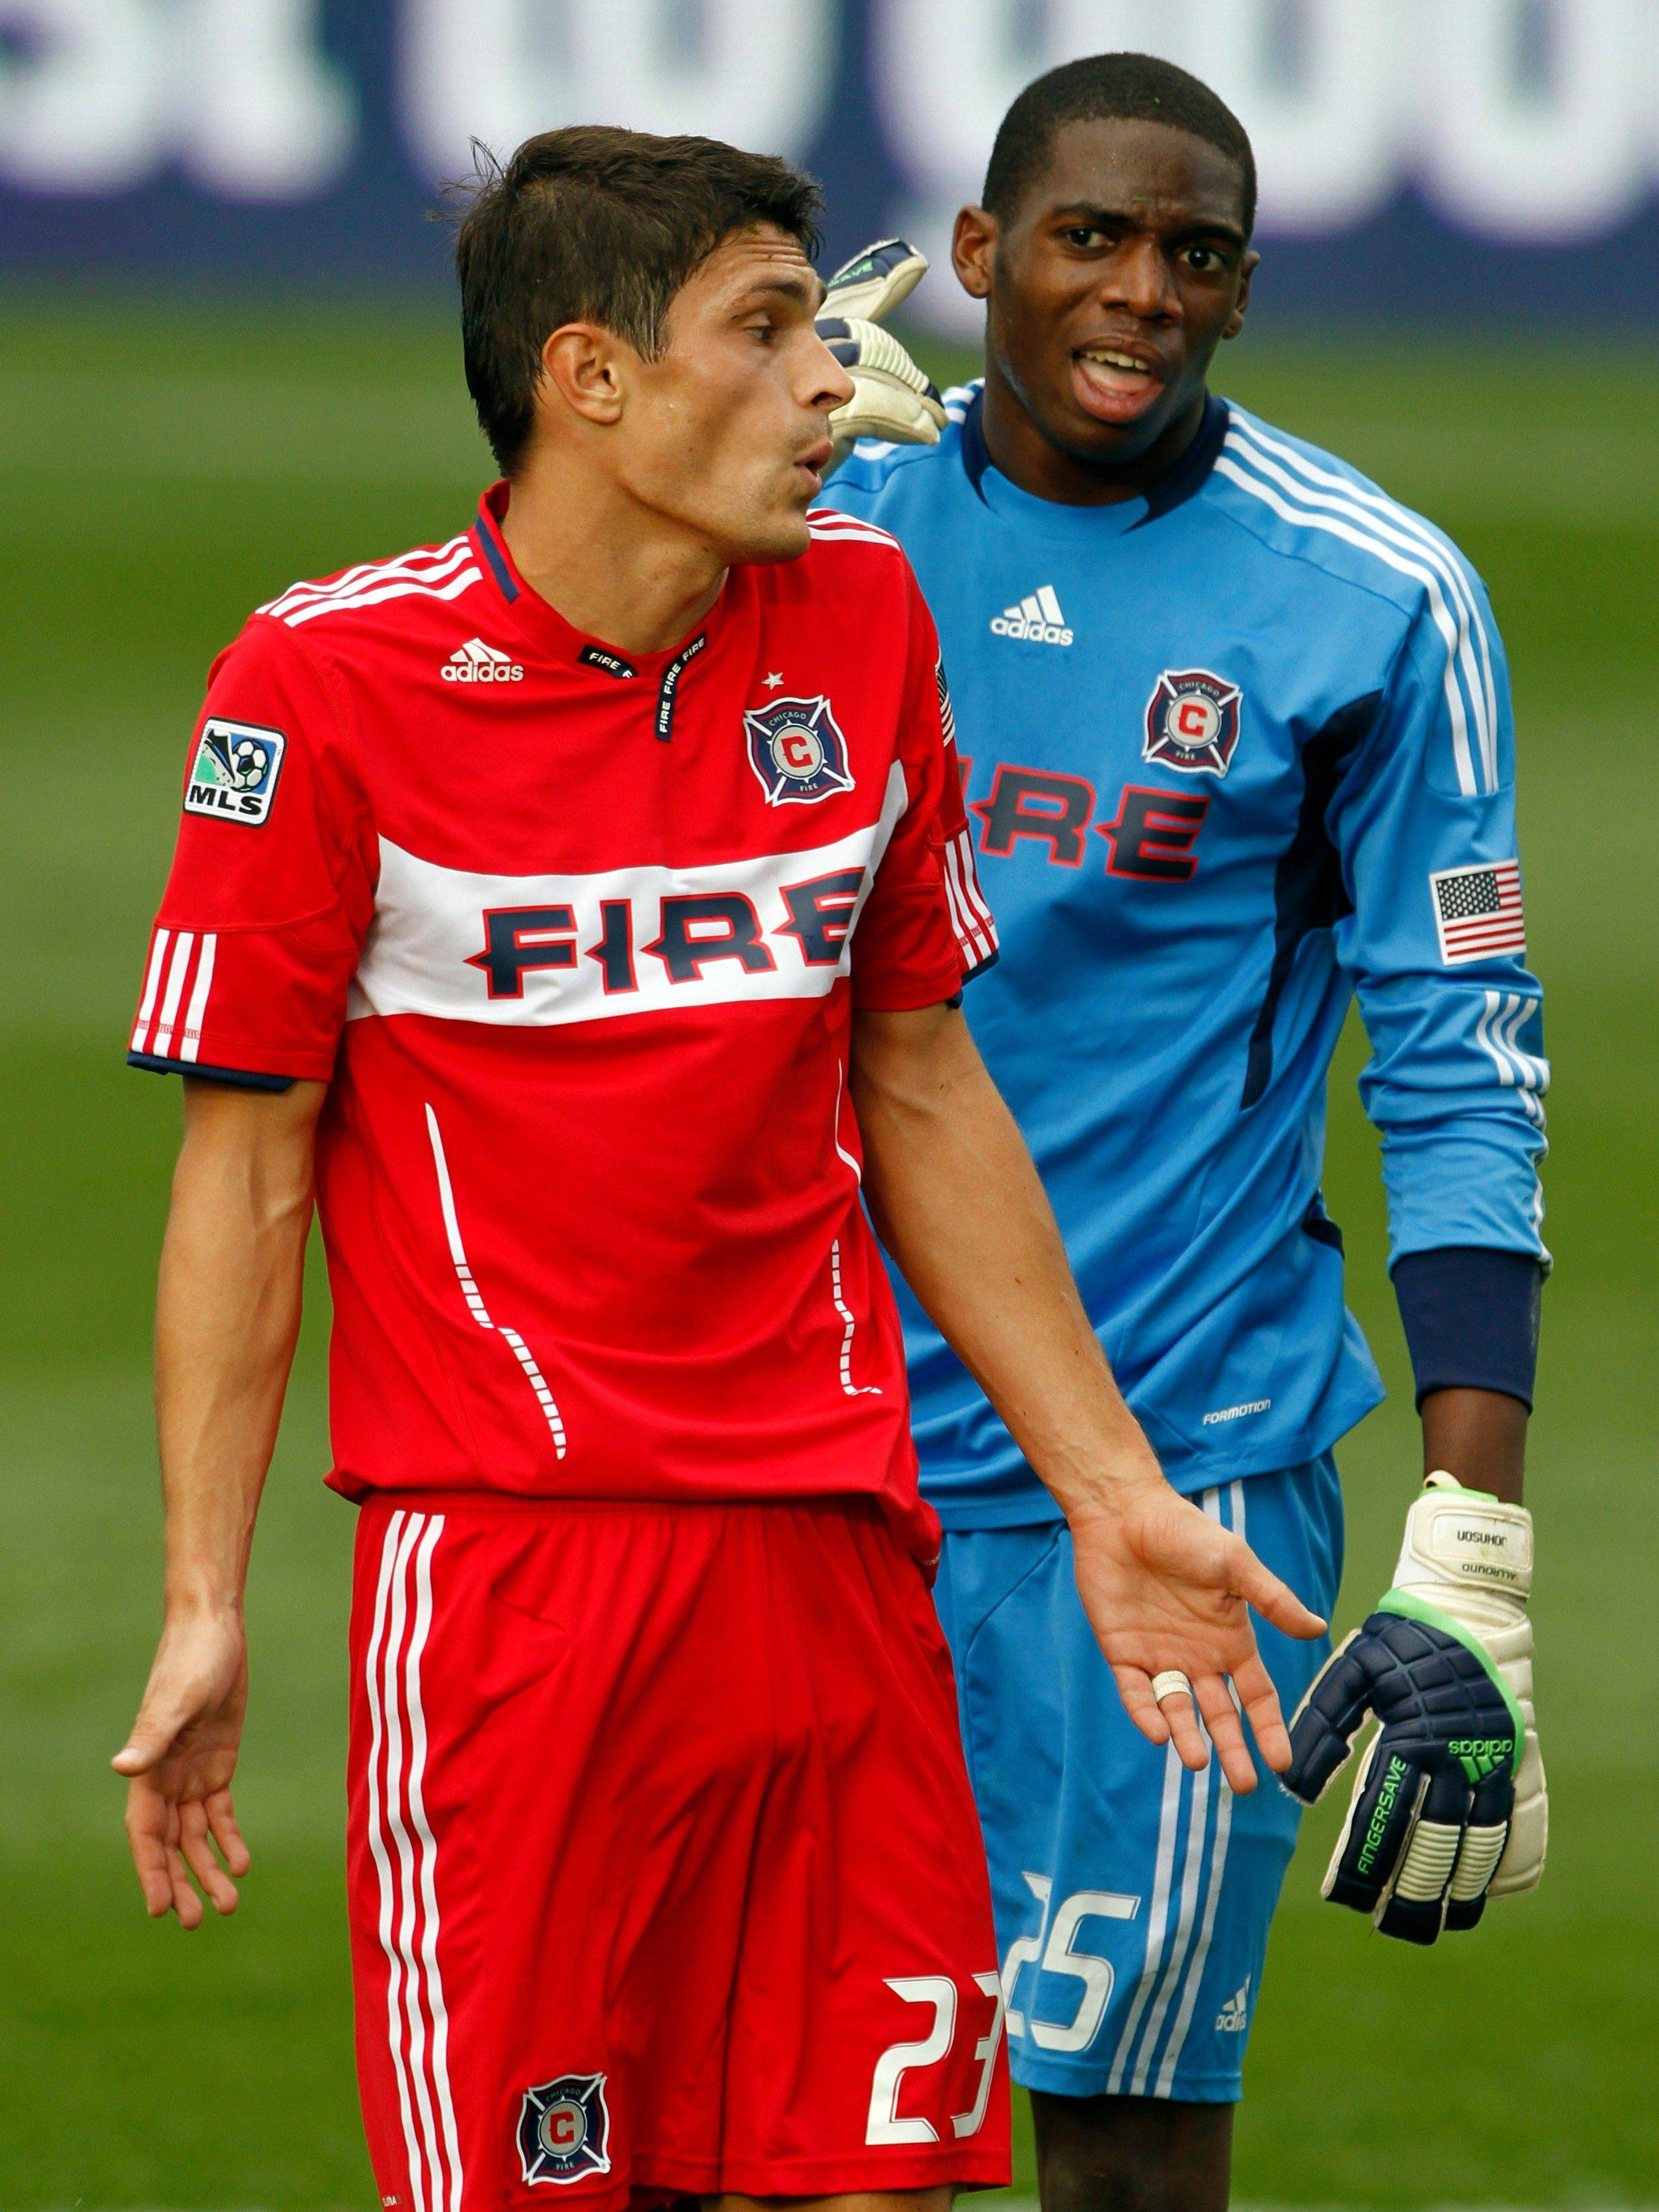 Chicago Fire goalie Sean Johnson, right, argues with teammate Josip Mikulic, left, after a close play in front of the net during the second half of an MLS soccer game in Bridgeview, Ill., on Sunday, Sept. 25, 2011. The Fire defeated the Revolution 3-2.